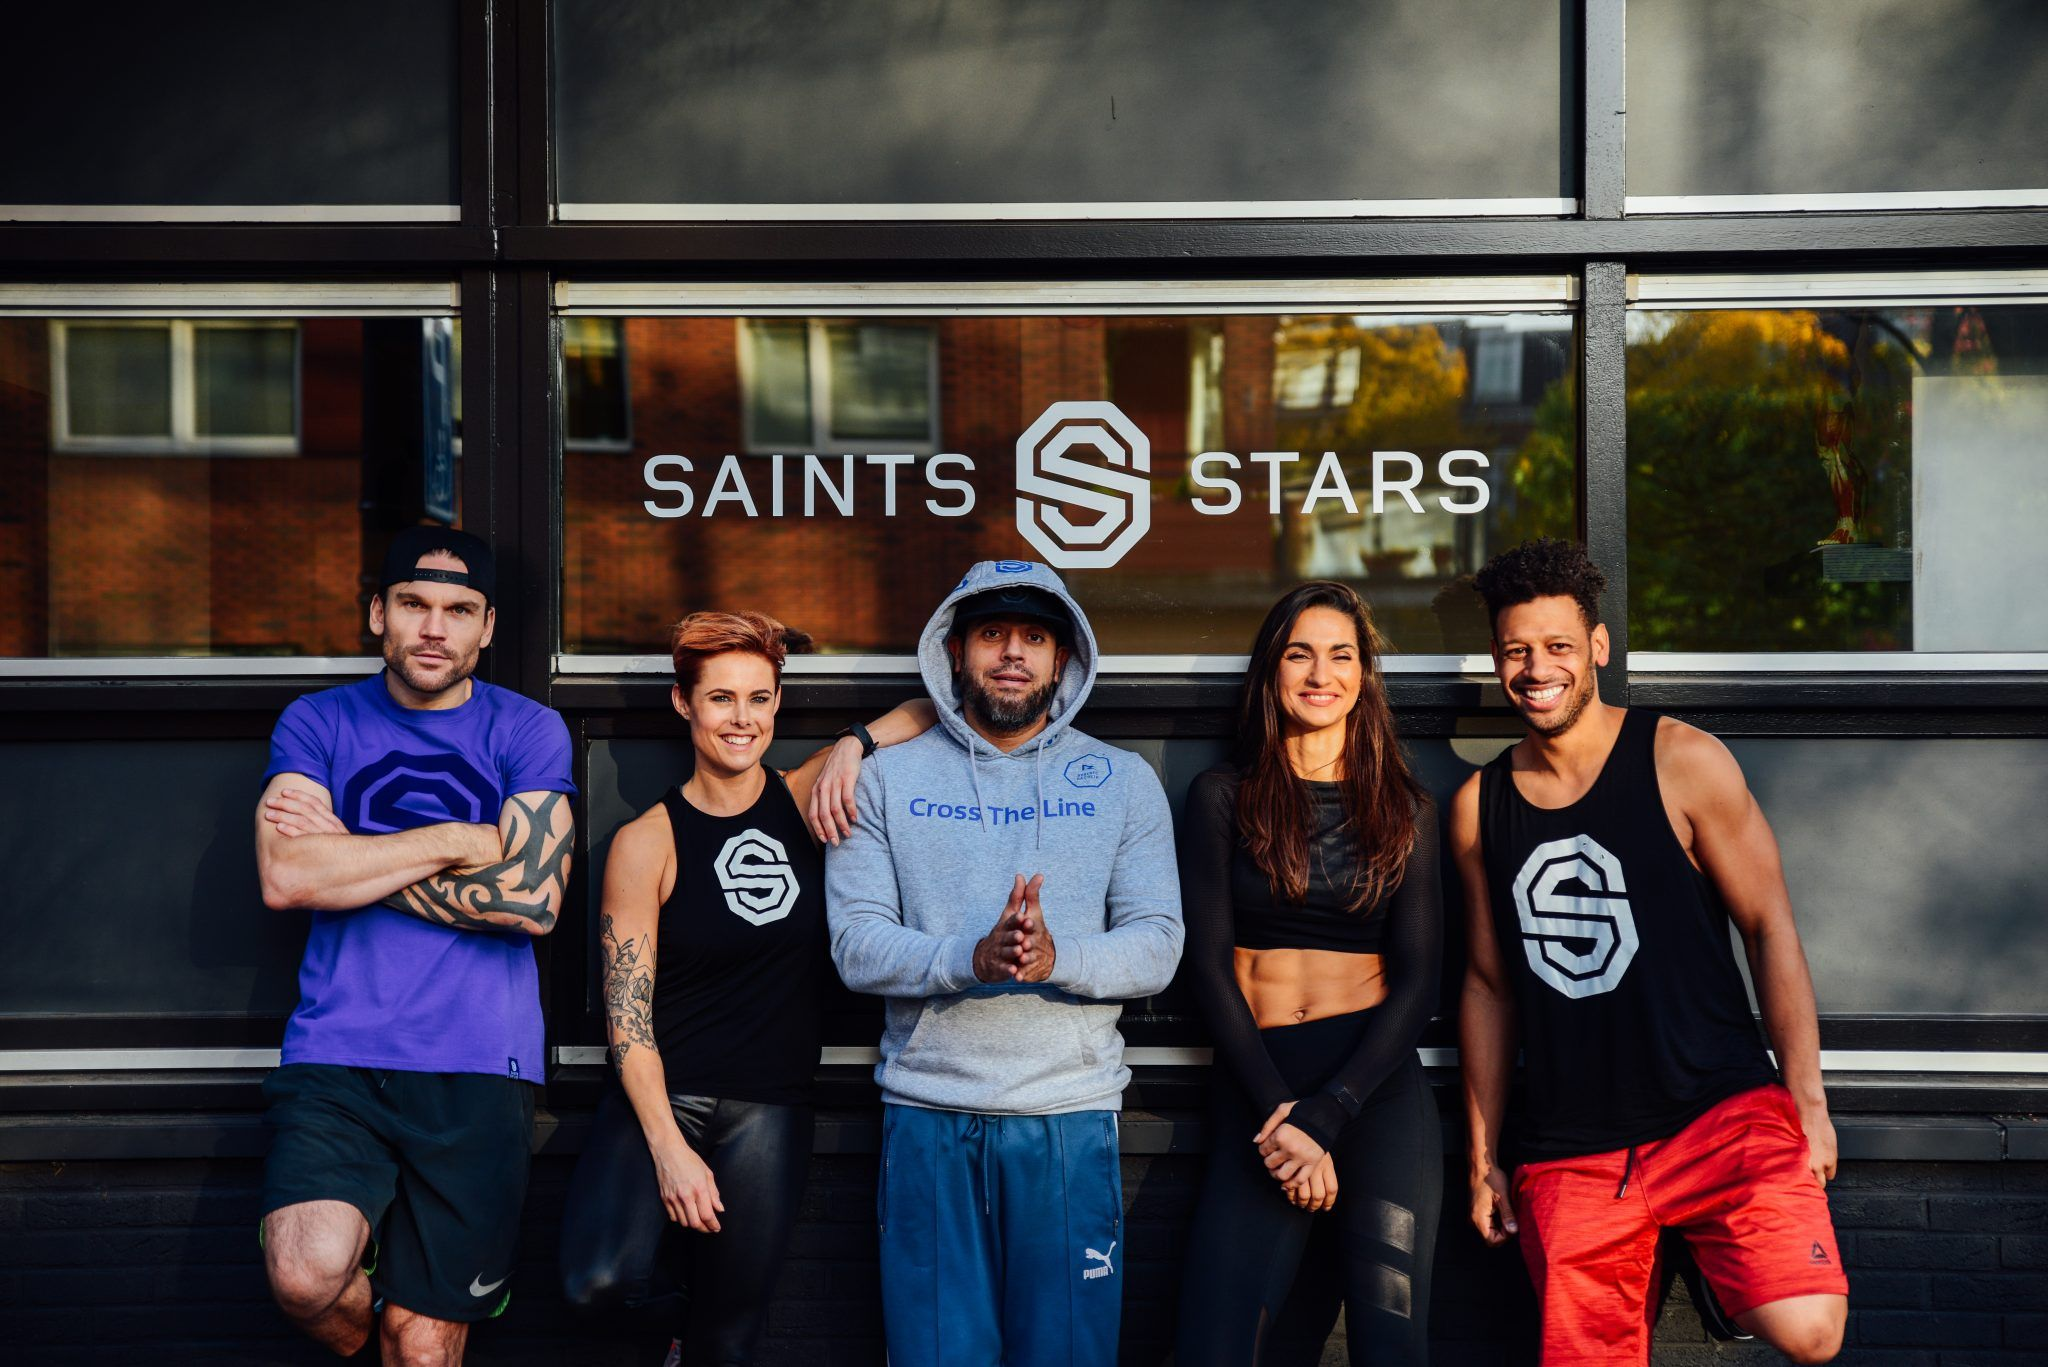 saints and stars, amsterdam, boutique gym, hit training, roberto da costa